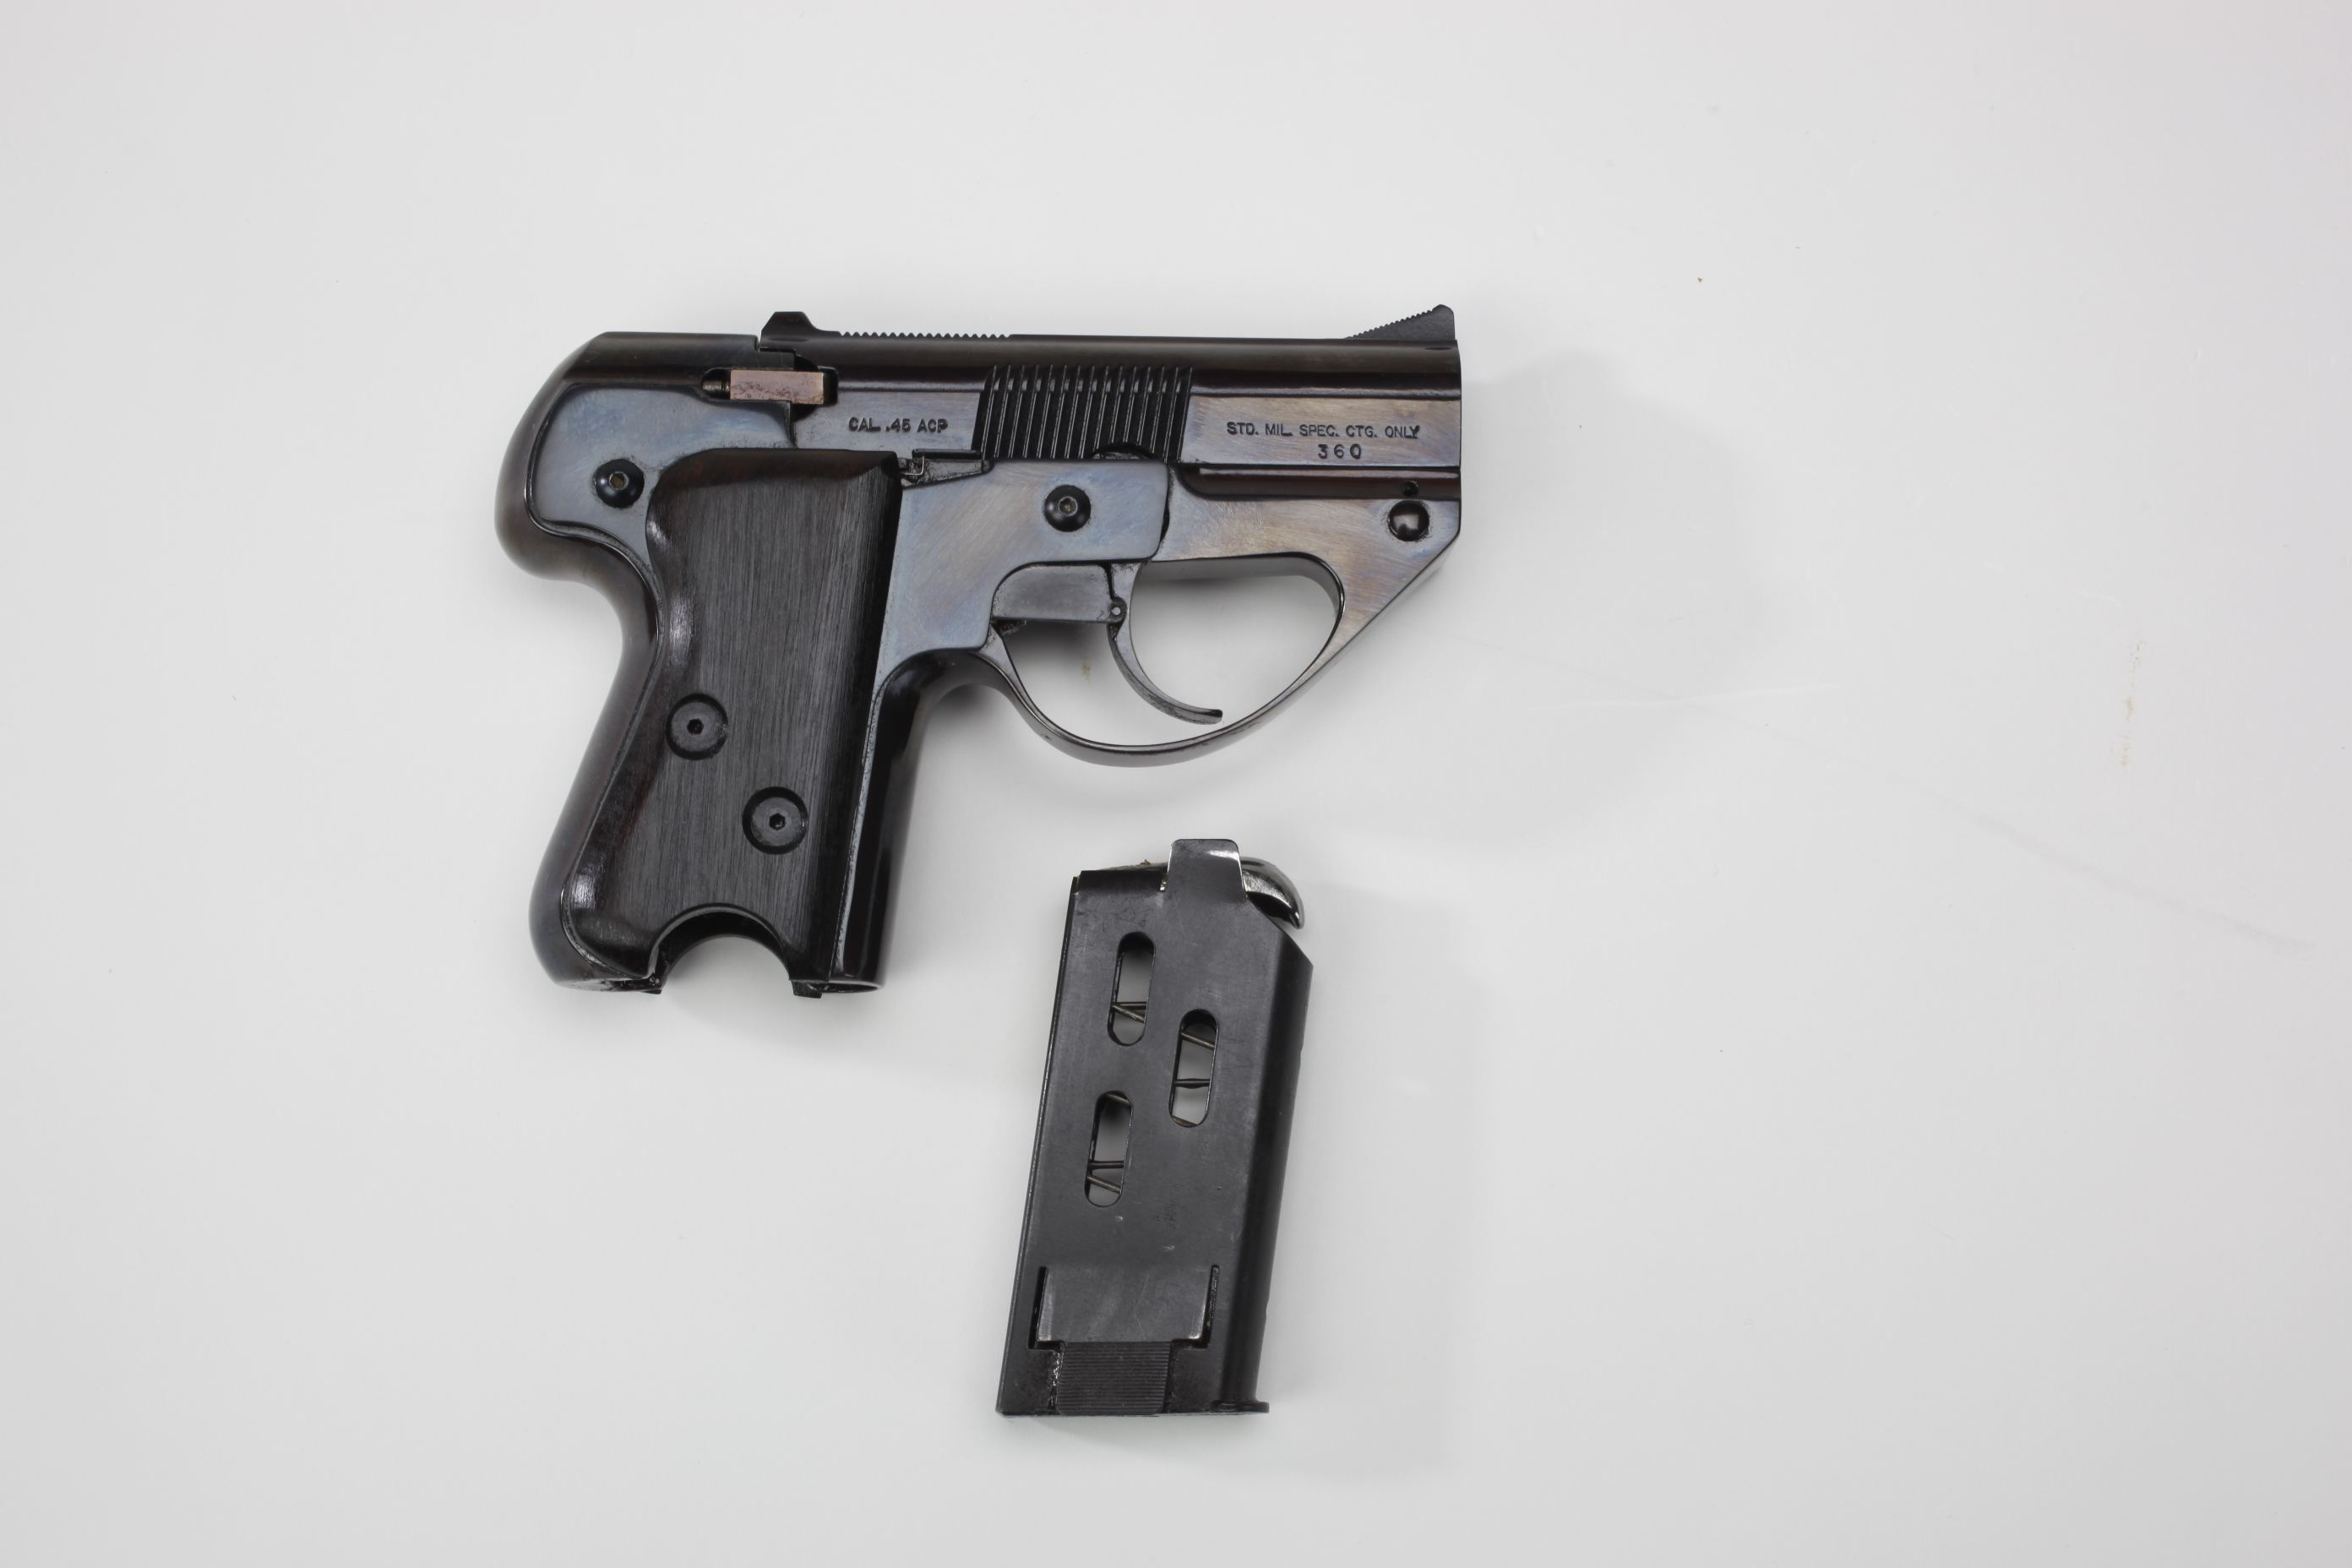 Semmerling LM 4 Semi Automatic Pistol